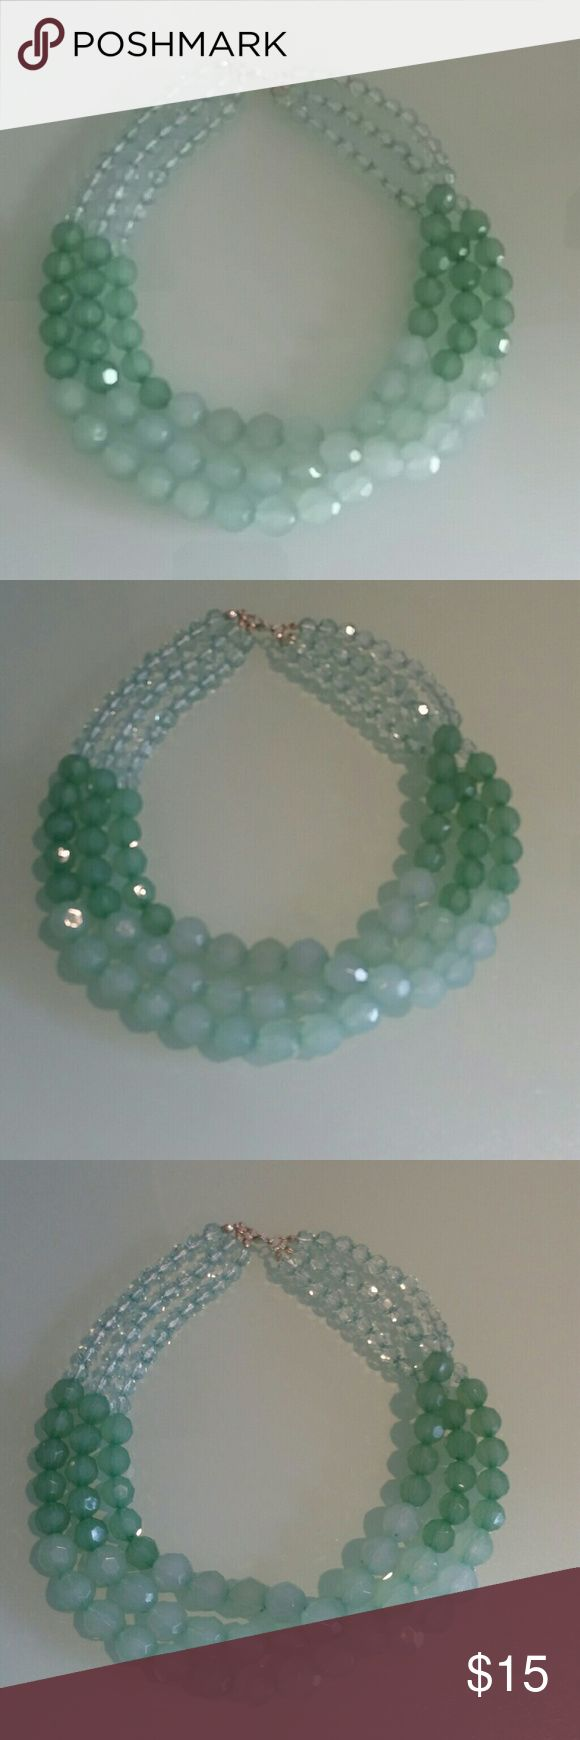 NWT Mint green 3 layer faceted statement necklace Brand new & unworn mint green 3 layers aceted statement necklace from Charlotte Russe in shades of green & aqua. Light & not at all heavy. Awesome statement piece! Charlotte Russe Jewelry Necklaces